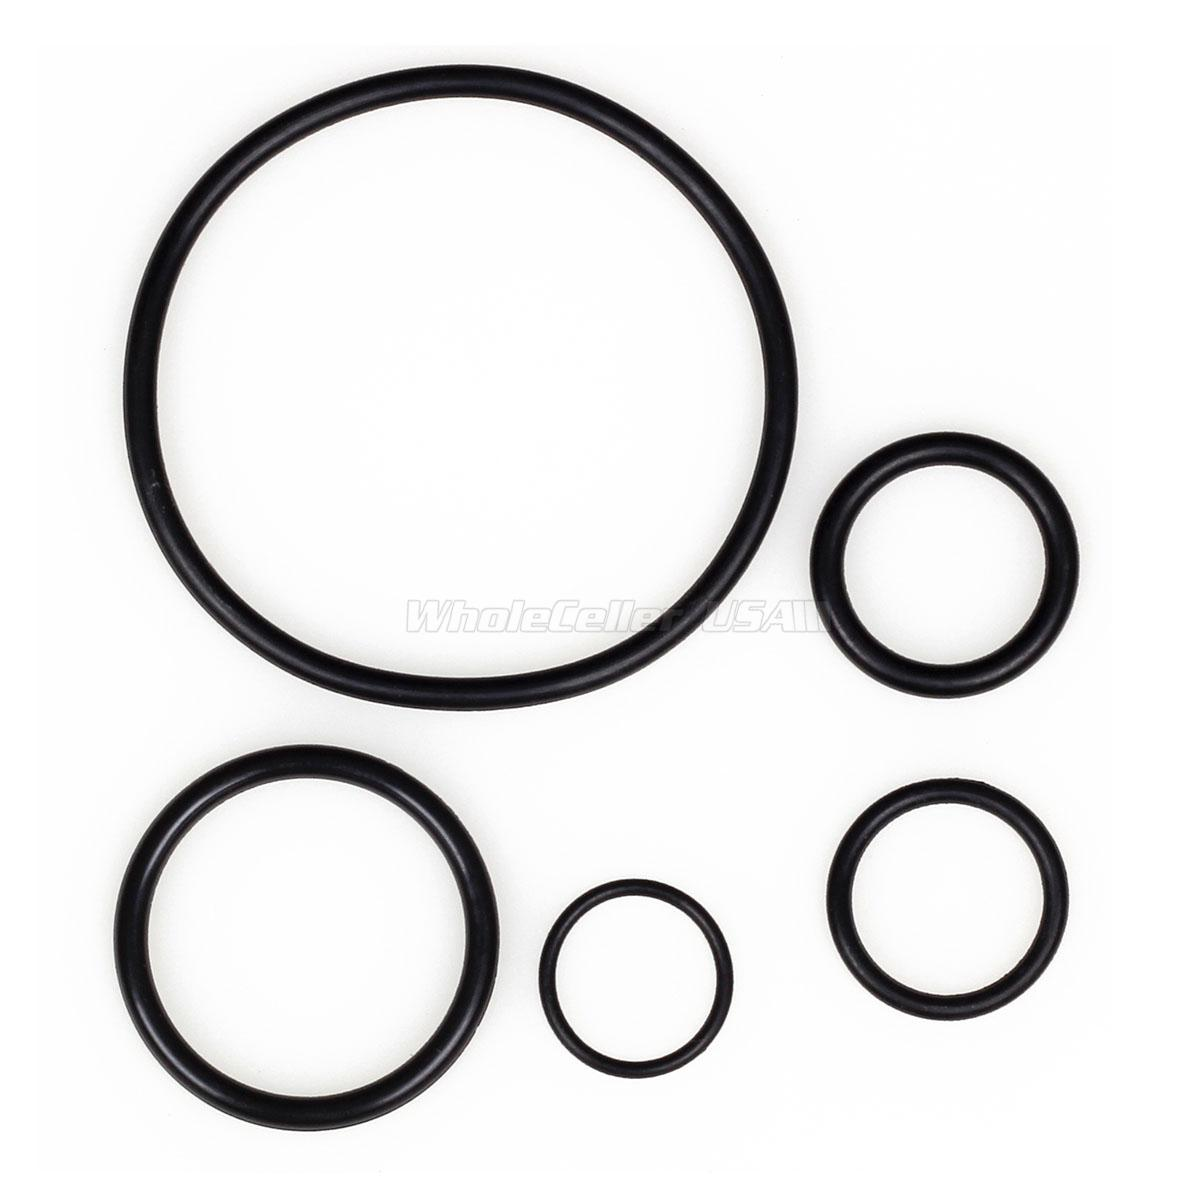 Lower Gasket kit Fits Jeep Cherokee Wrangler Grand